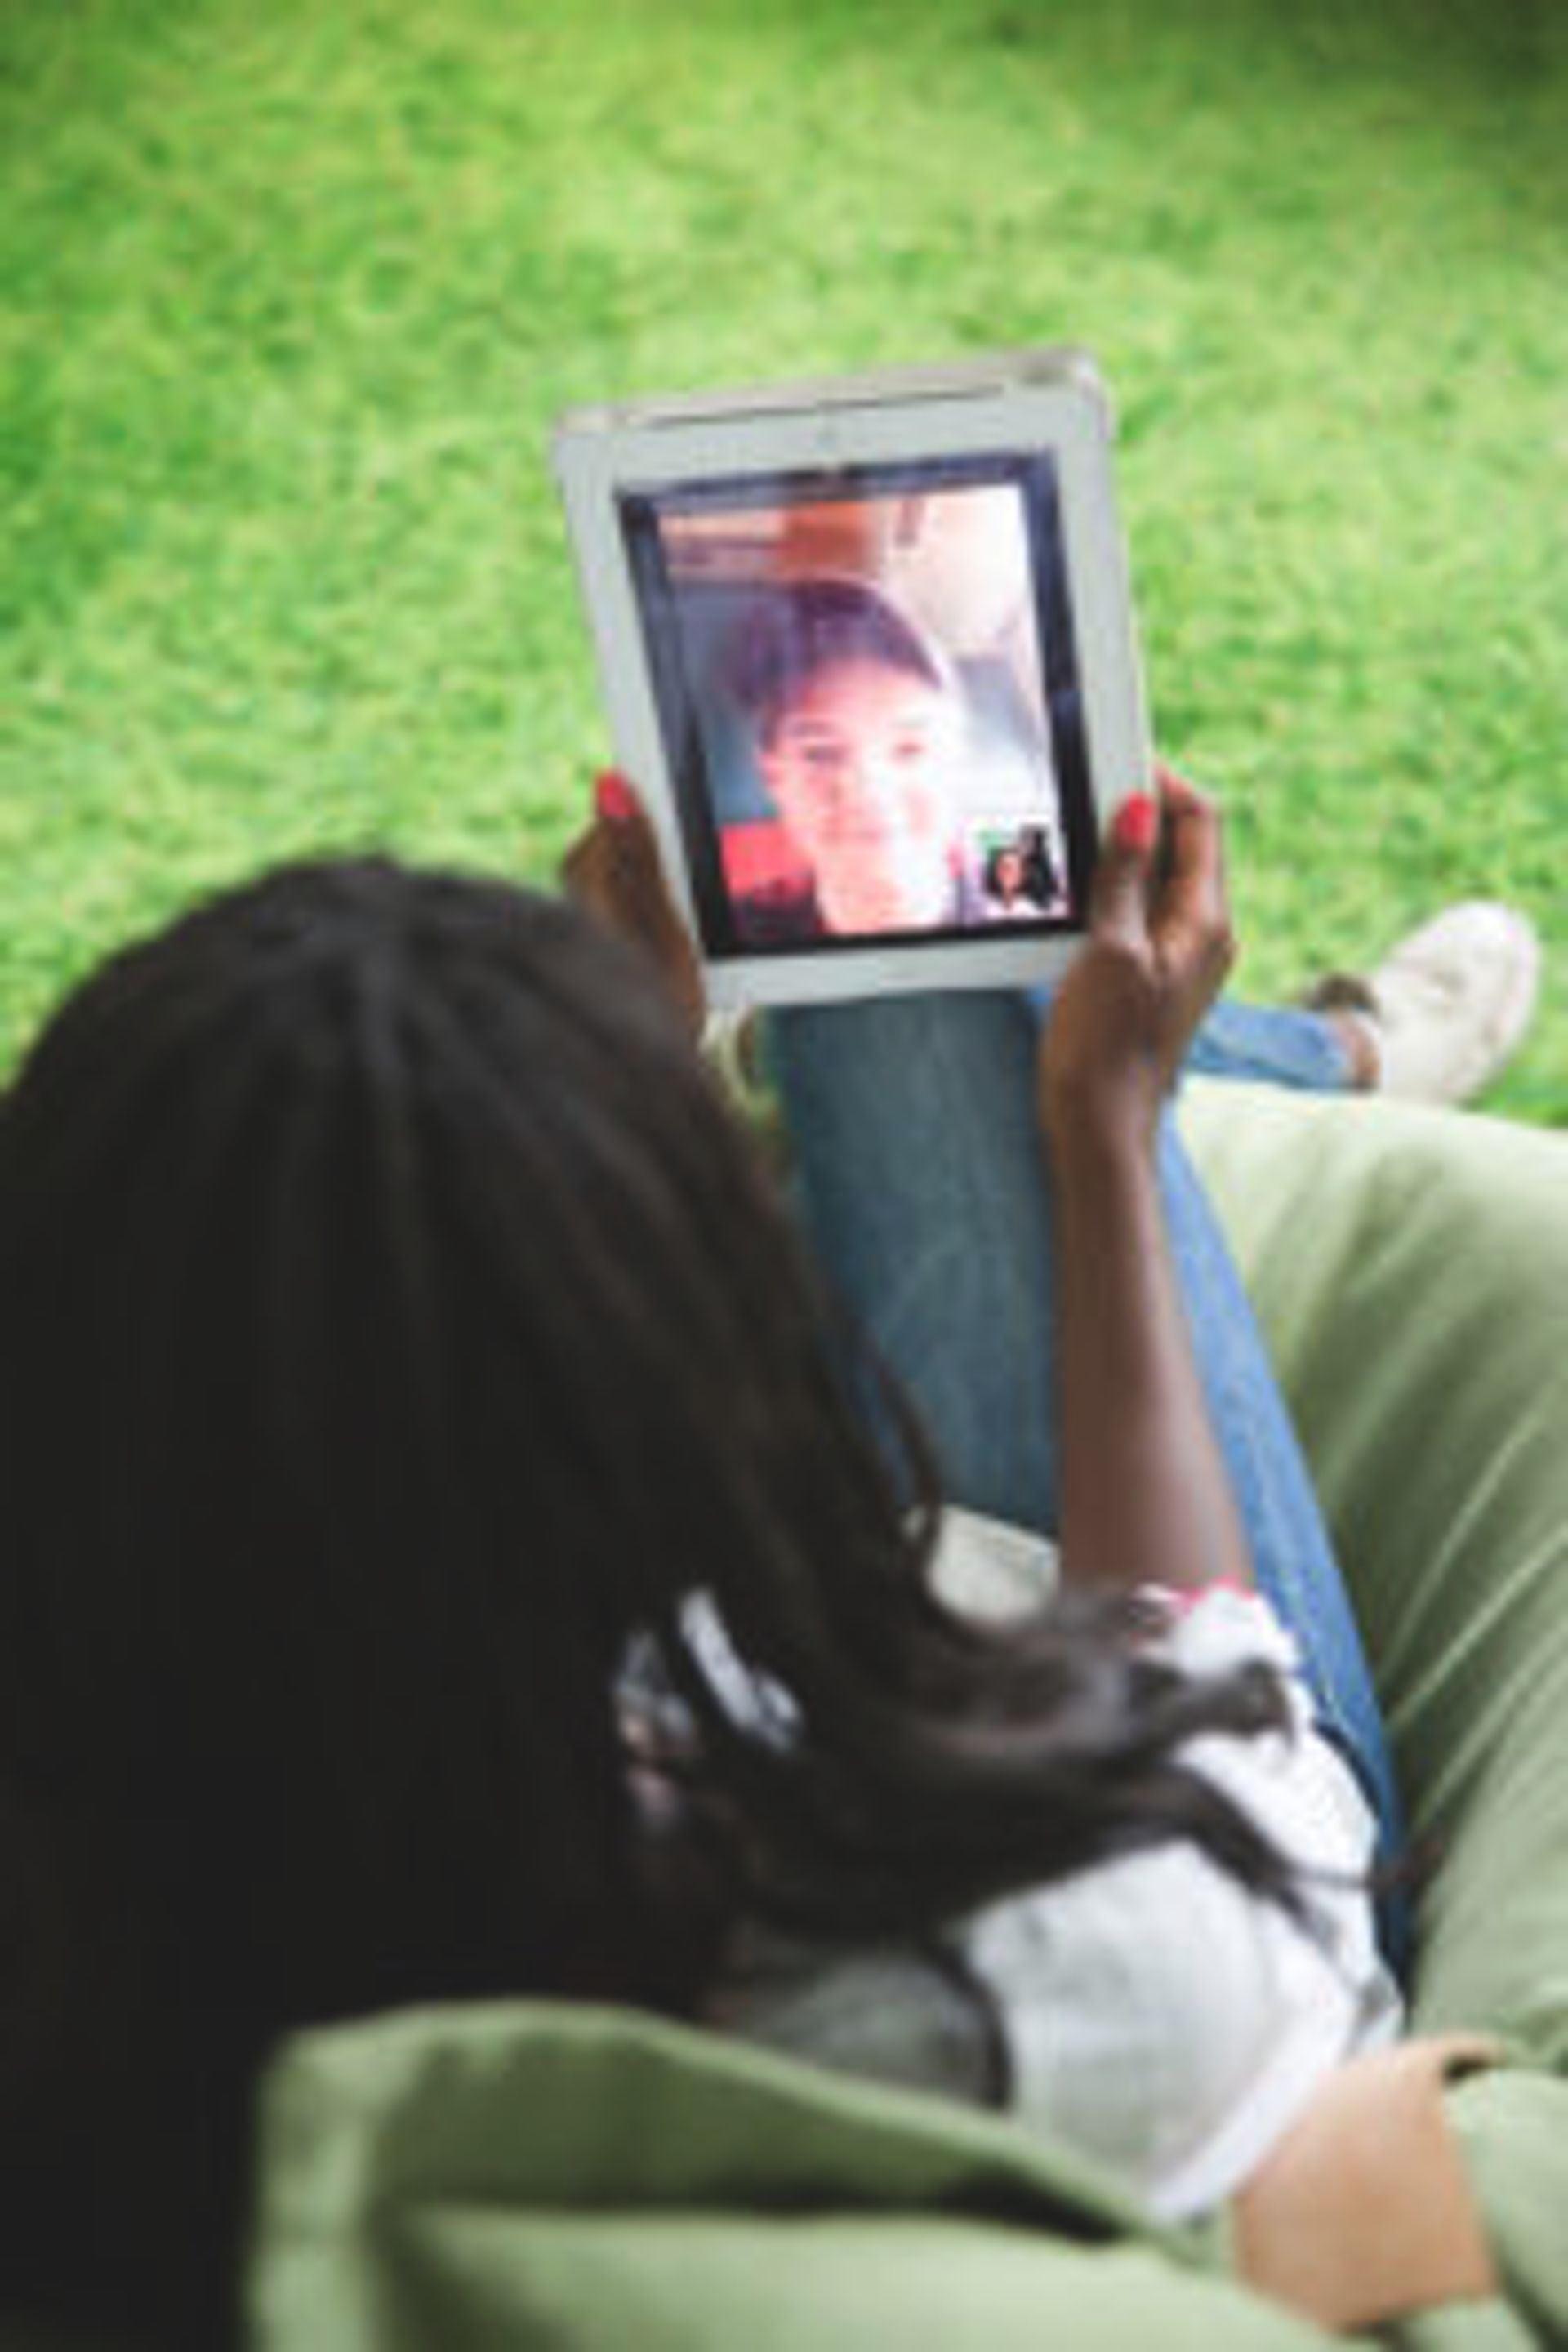 Person having a video call on an iPad.